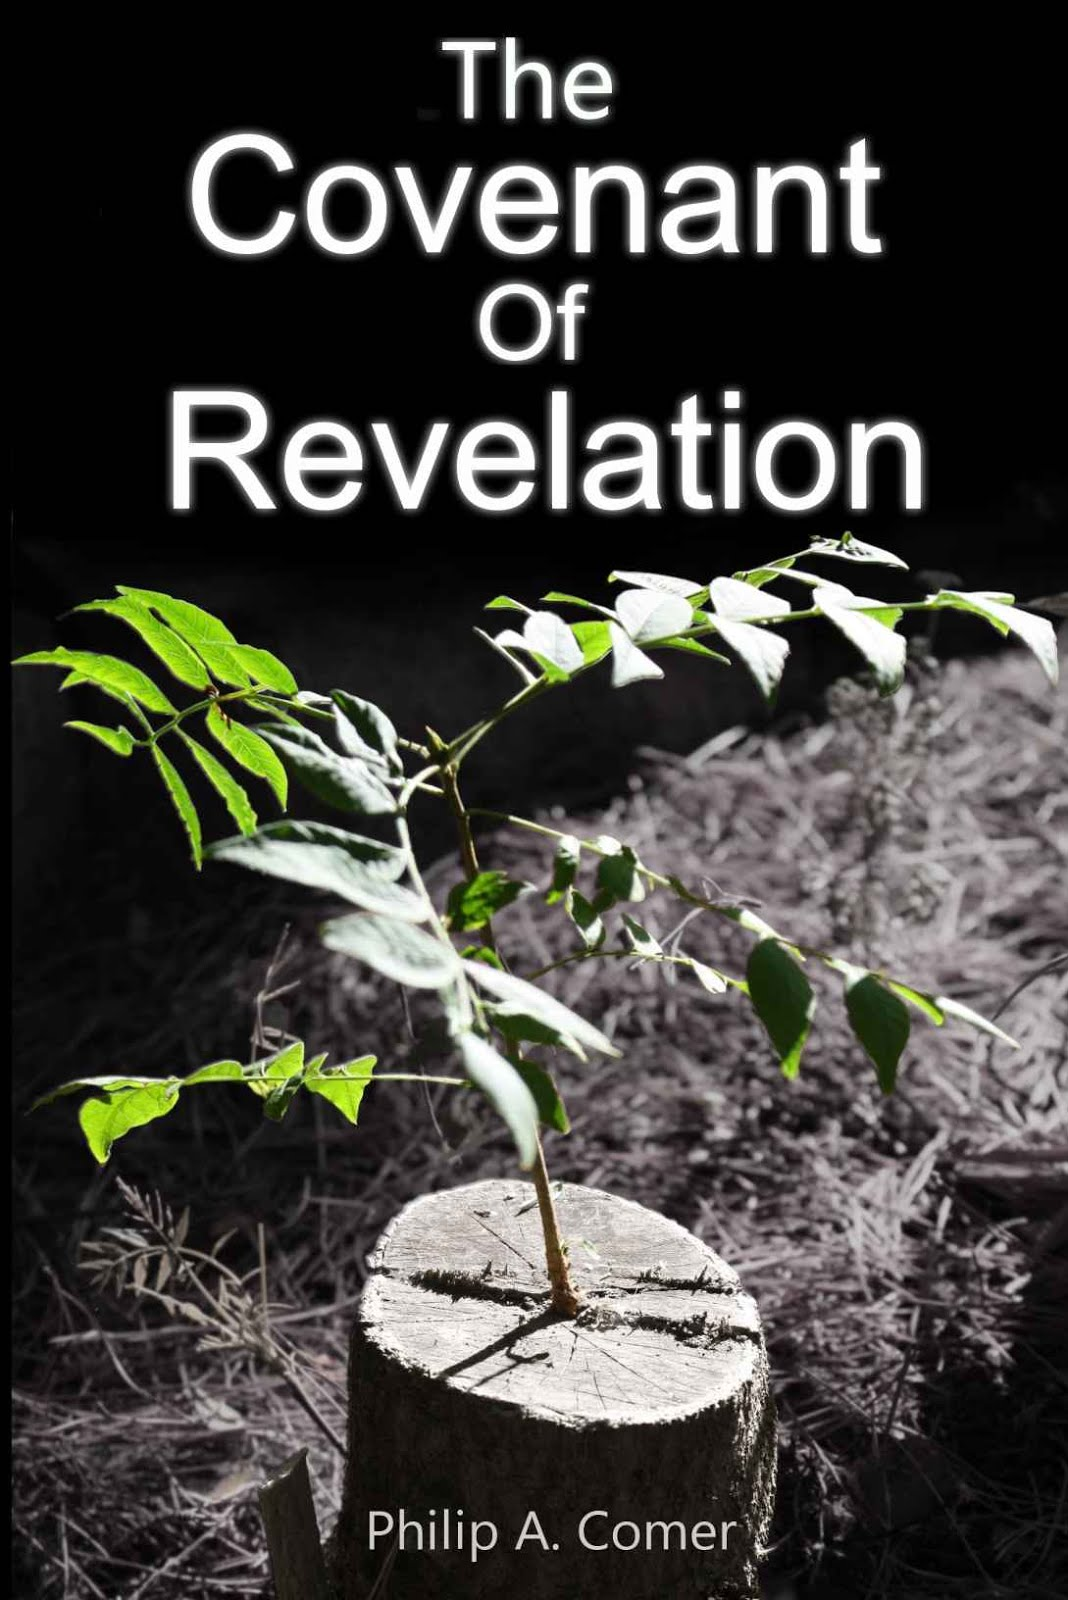 the Covenant of Revelation